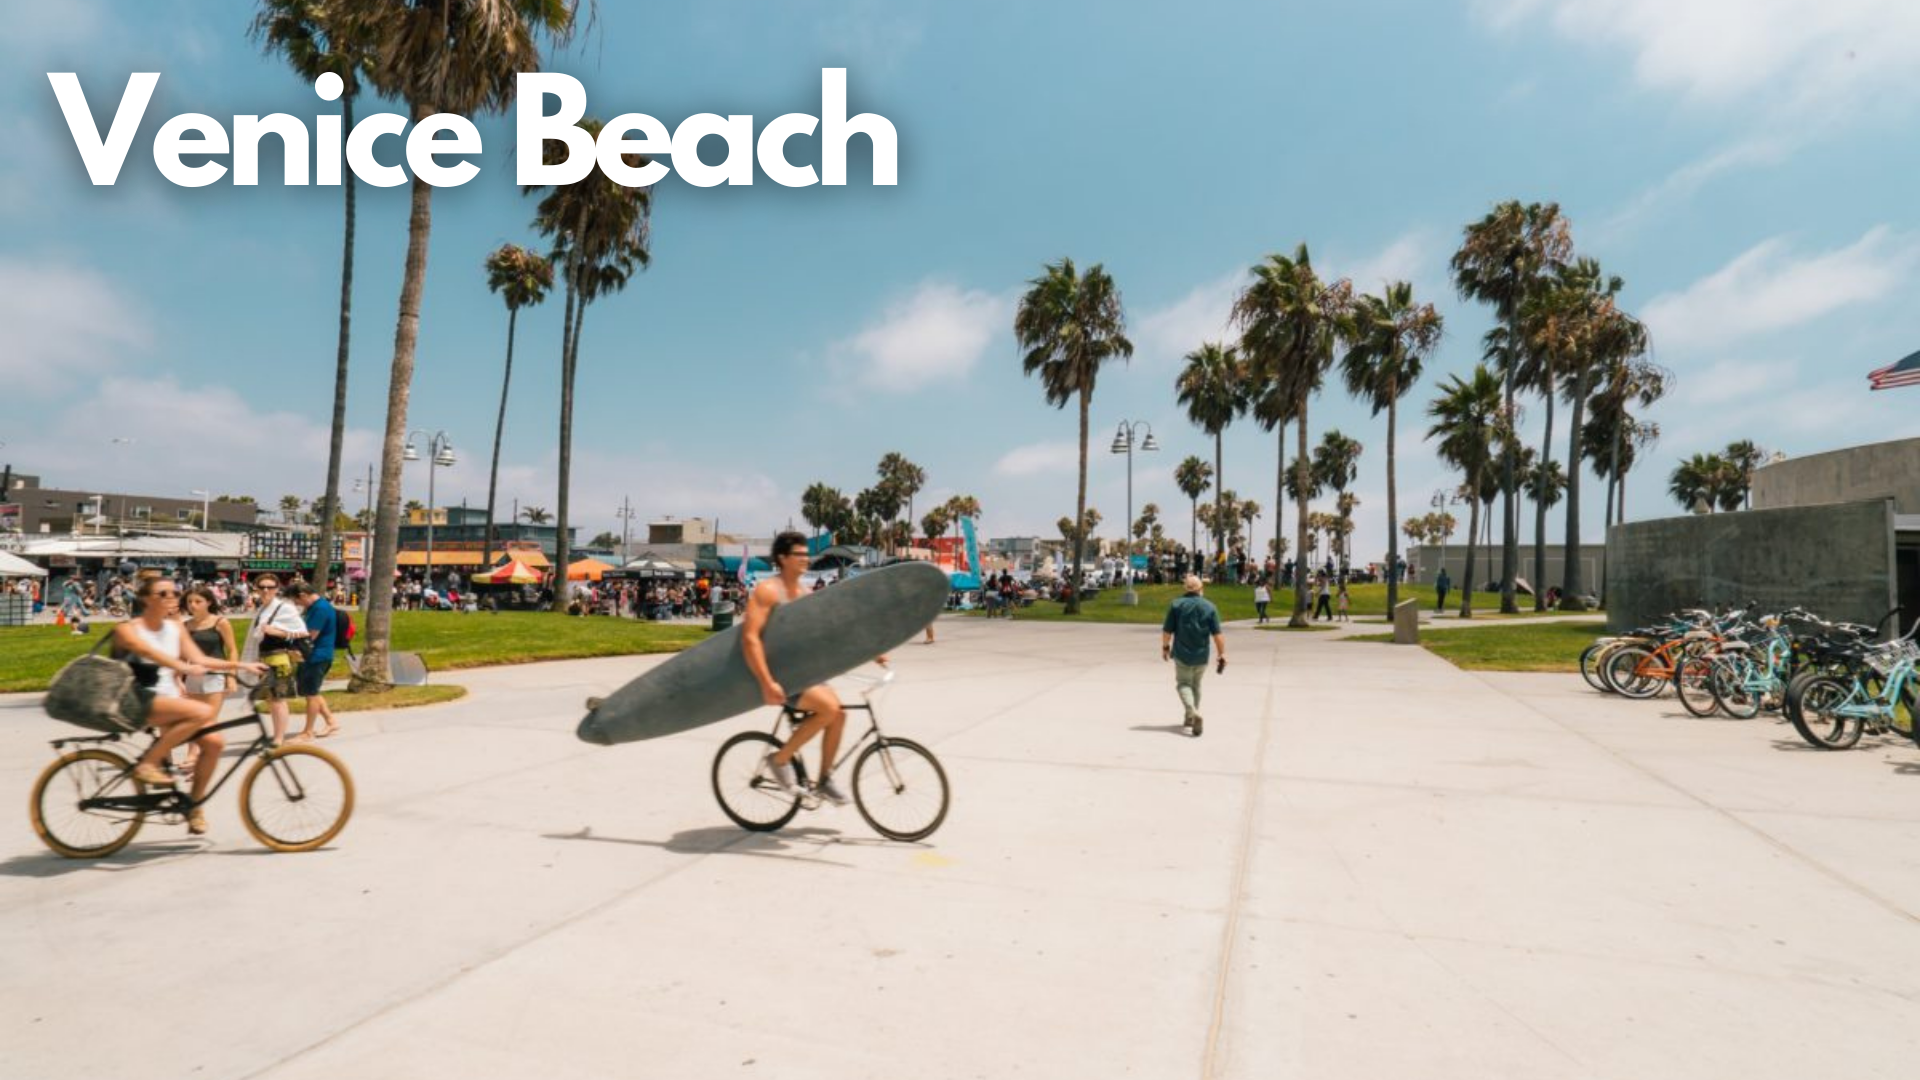 venice beach, california, lots of palm trees, blue sky, multiple bikers, 2 bikers with surfboards in arms crossing bike path